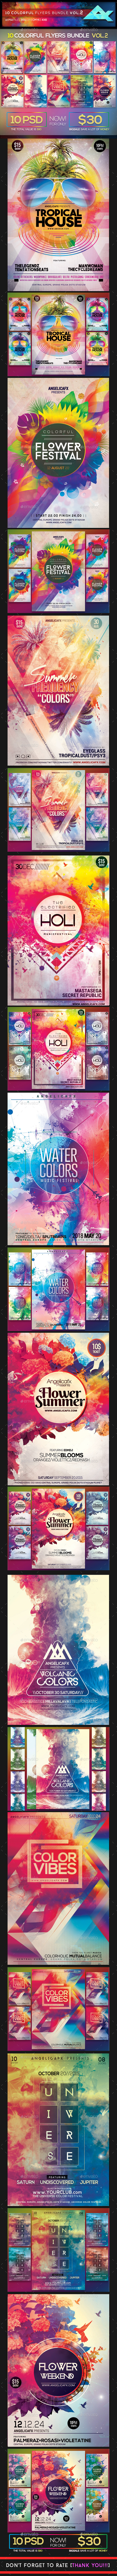 GraphicRiver 10 Colorful Flyers Bundle Vol 2 21142524